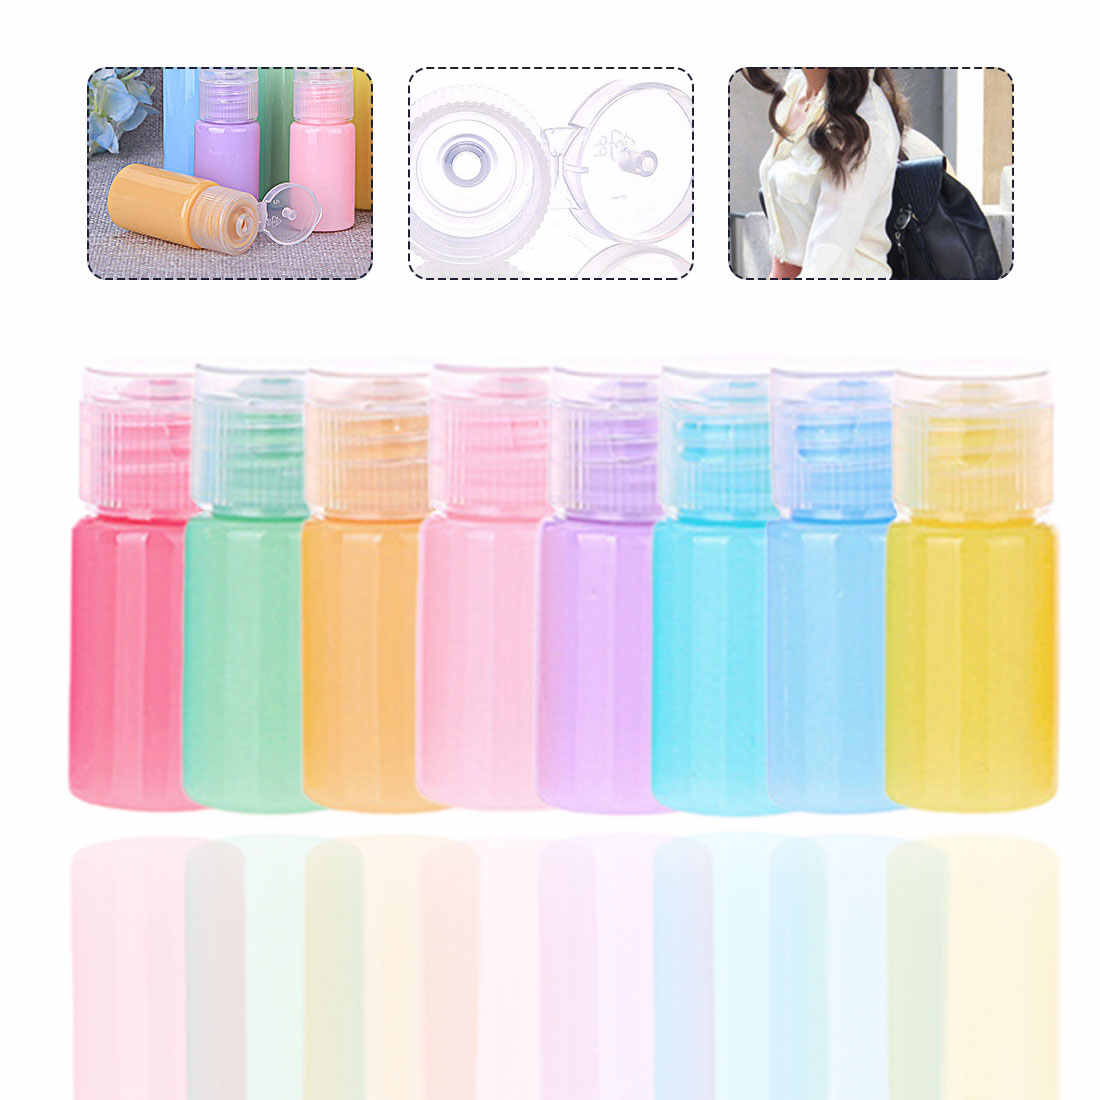 10ml Makeup Refillable Bottles Traveling Packing Empty Portable Bottle For Lotion Soap Travel Refillable Bottles